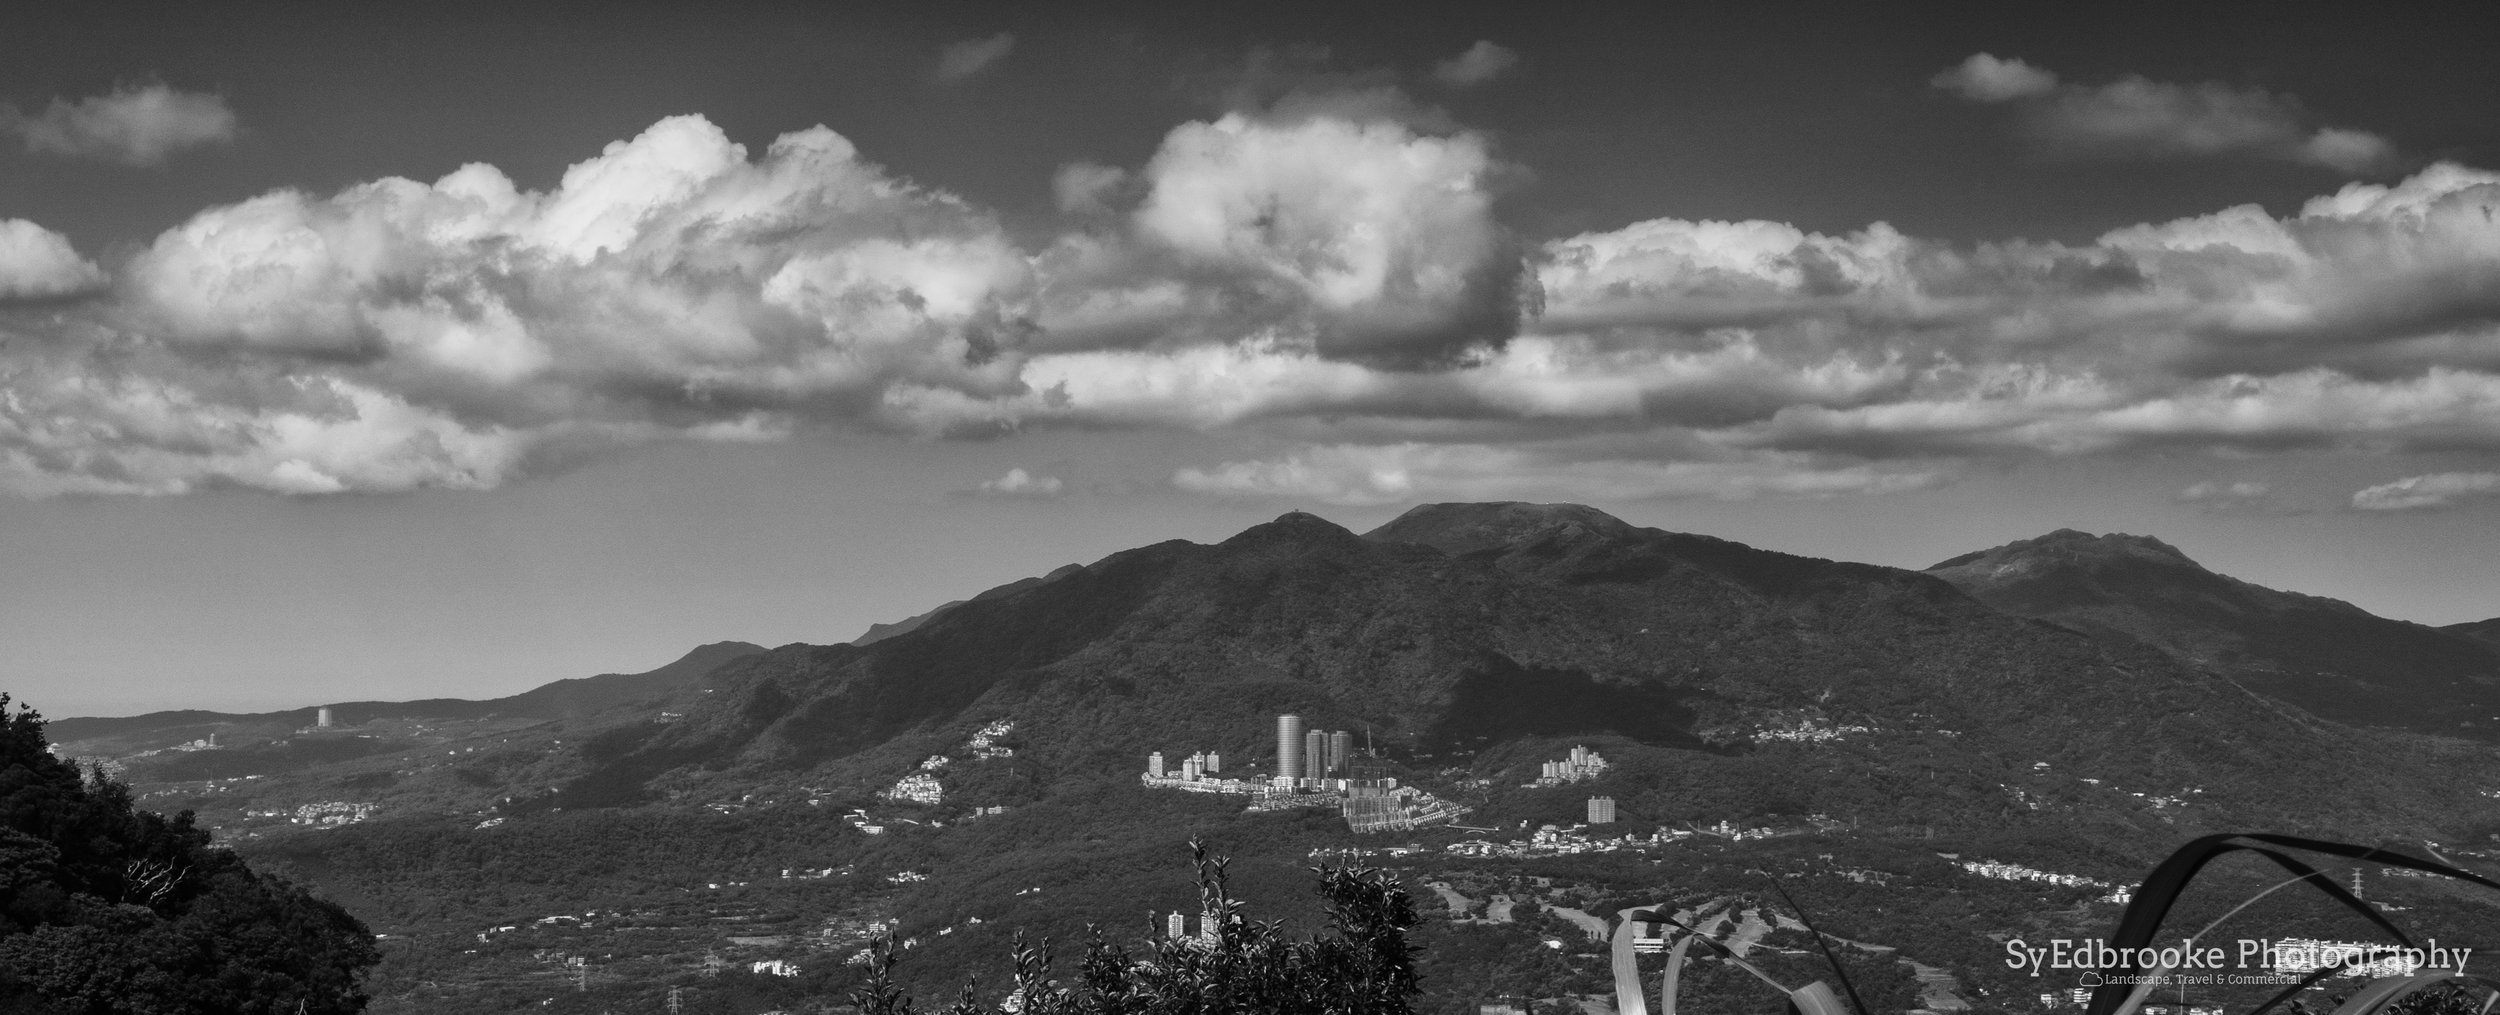 Mt. Datun and YangMingShan Peaks the opposite side of the river. f11, ISO 200, 1/100,50mm